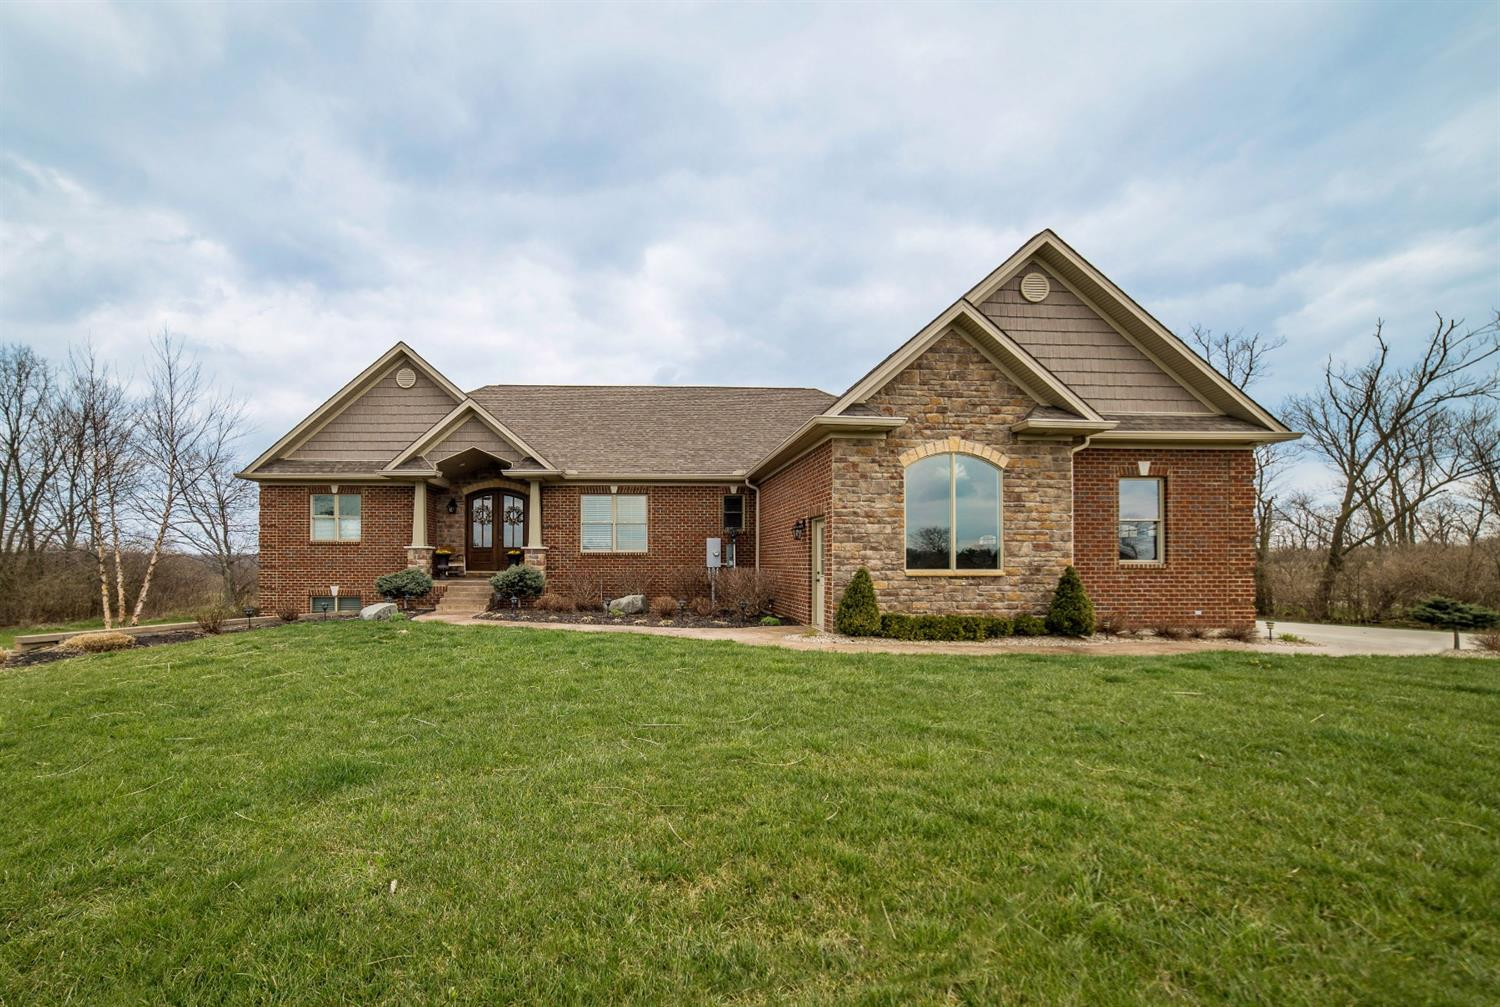 5048 Thomas Rd Wayne Twp. (Butler Co.), OH